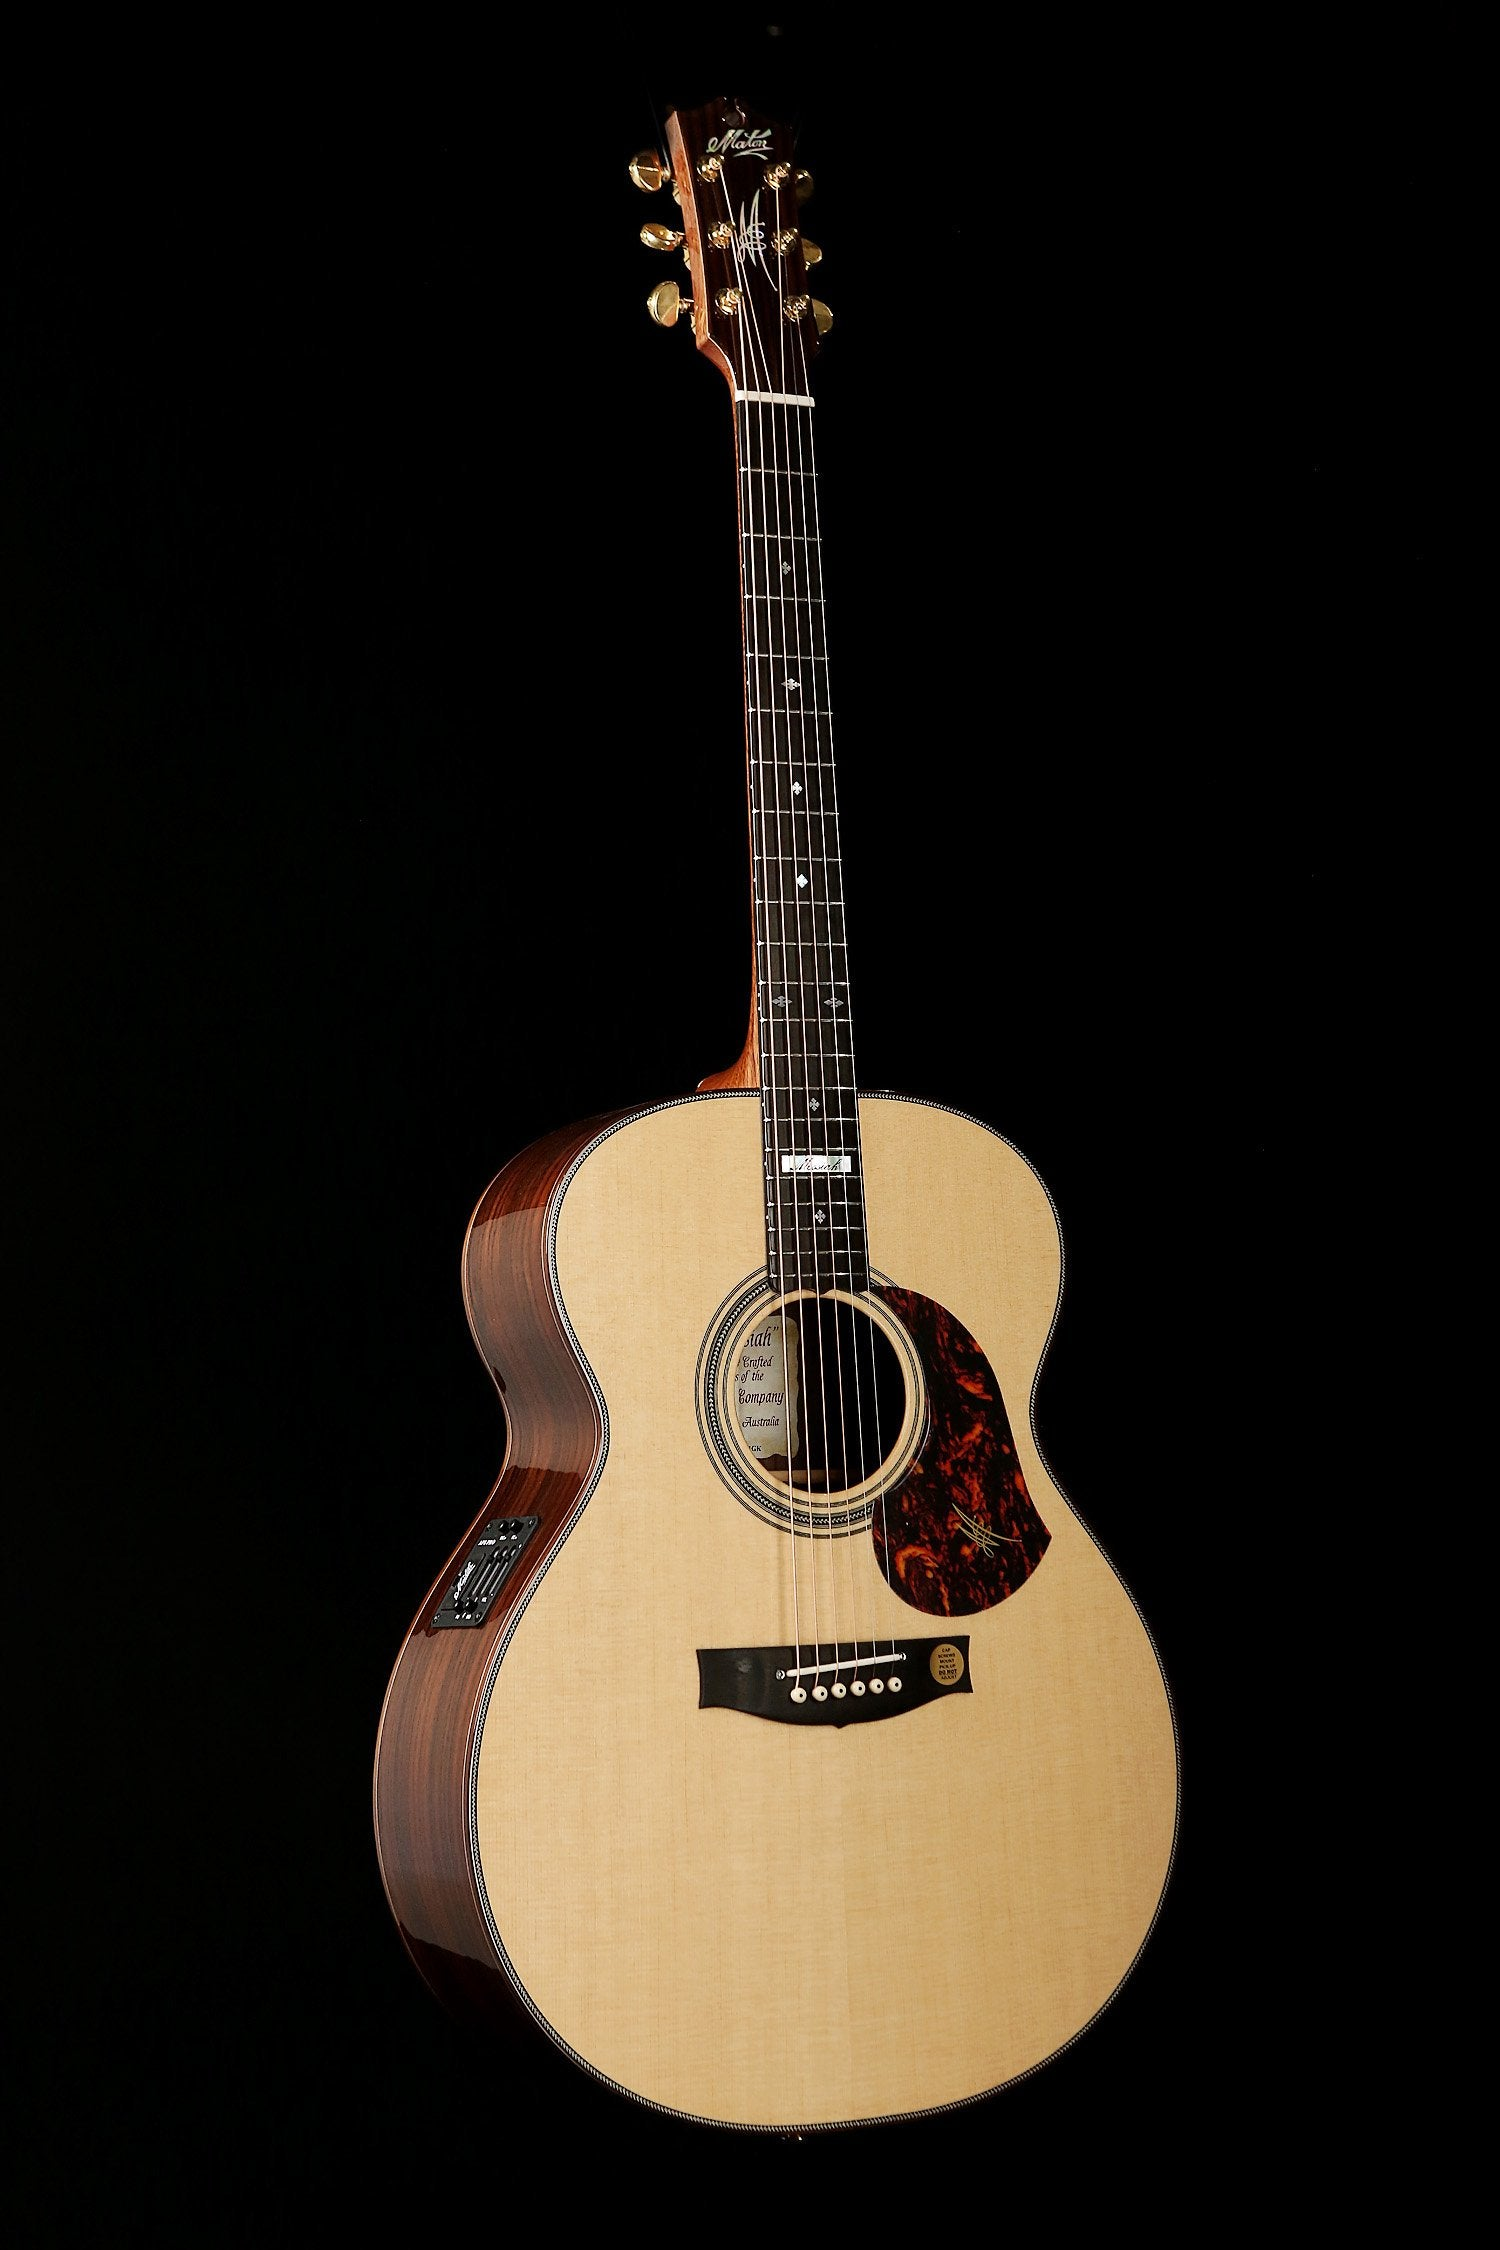 The Acoustic Guitar Specialists Maton Martin Taylor Collings Pickup Microphone Wire Amplifier Speaker For Black Em100j Messiah Jumbo